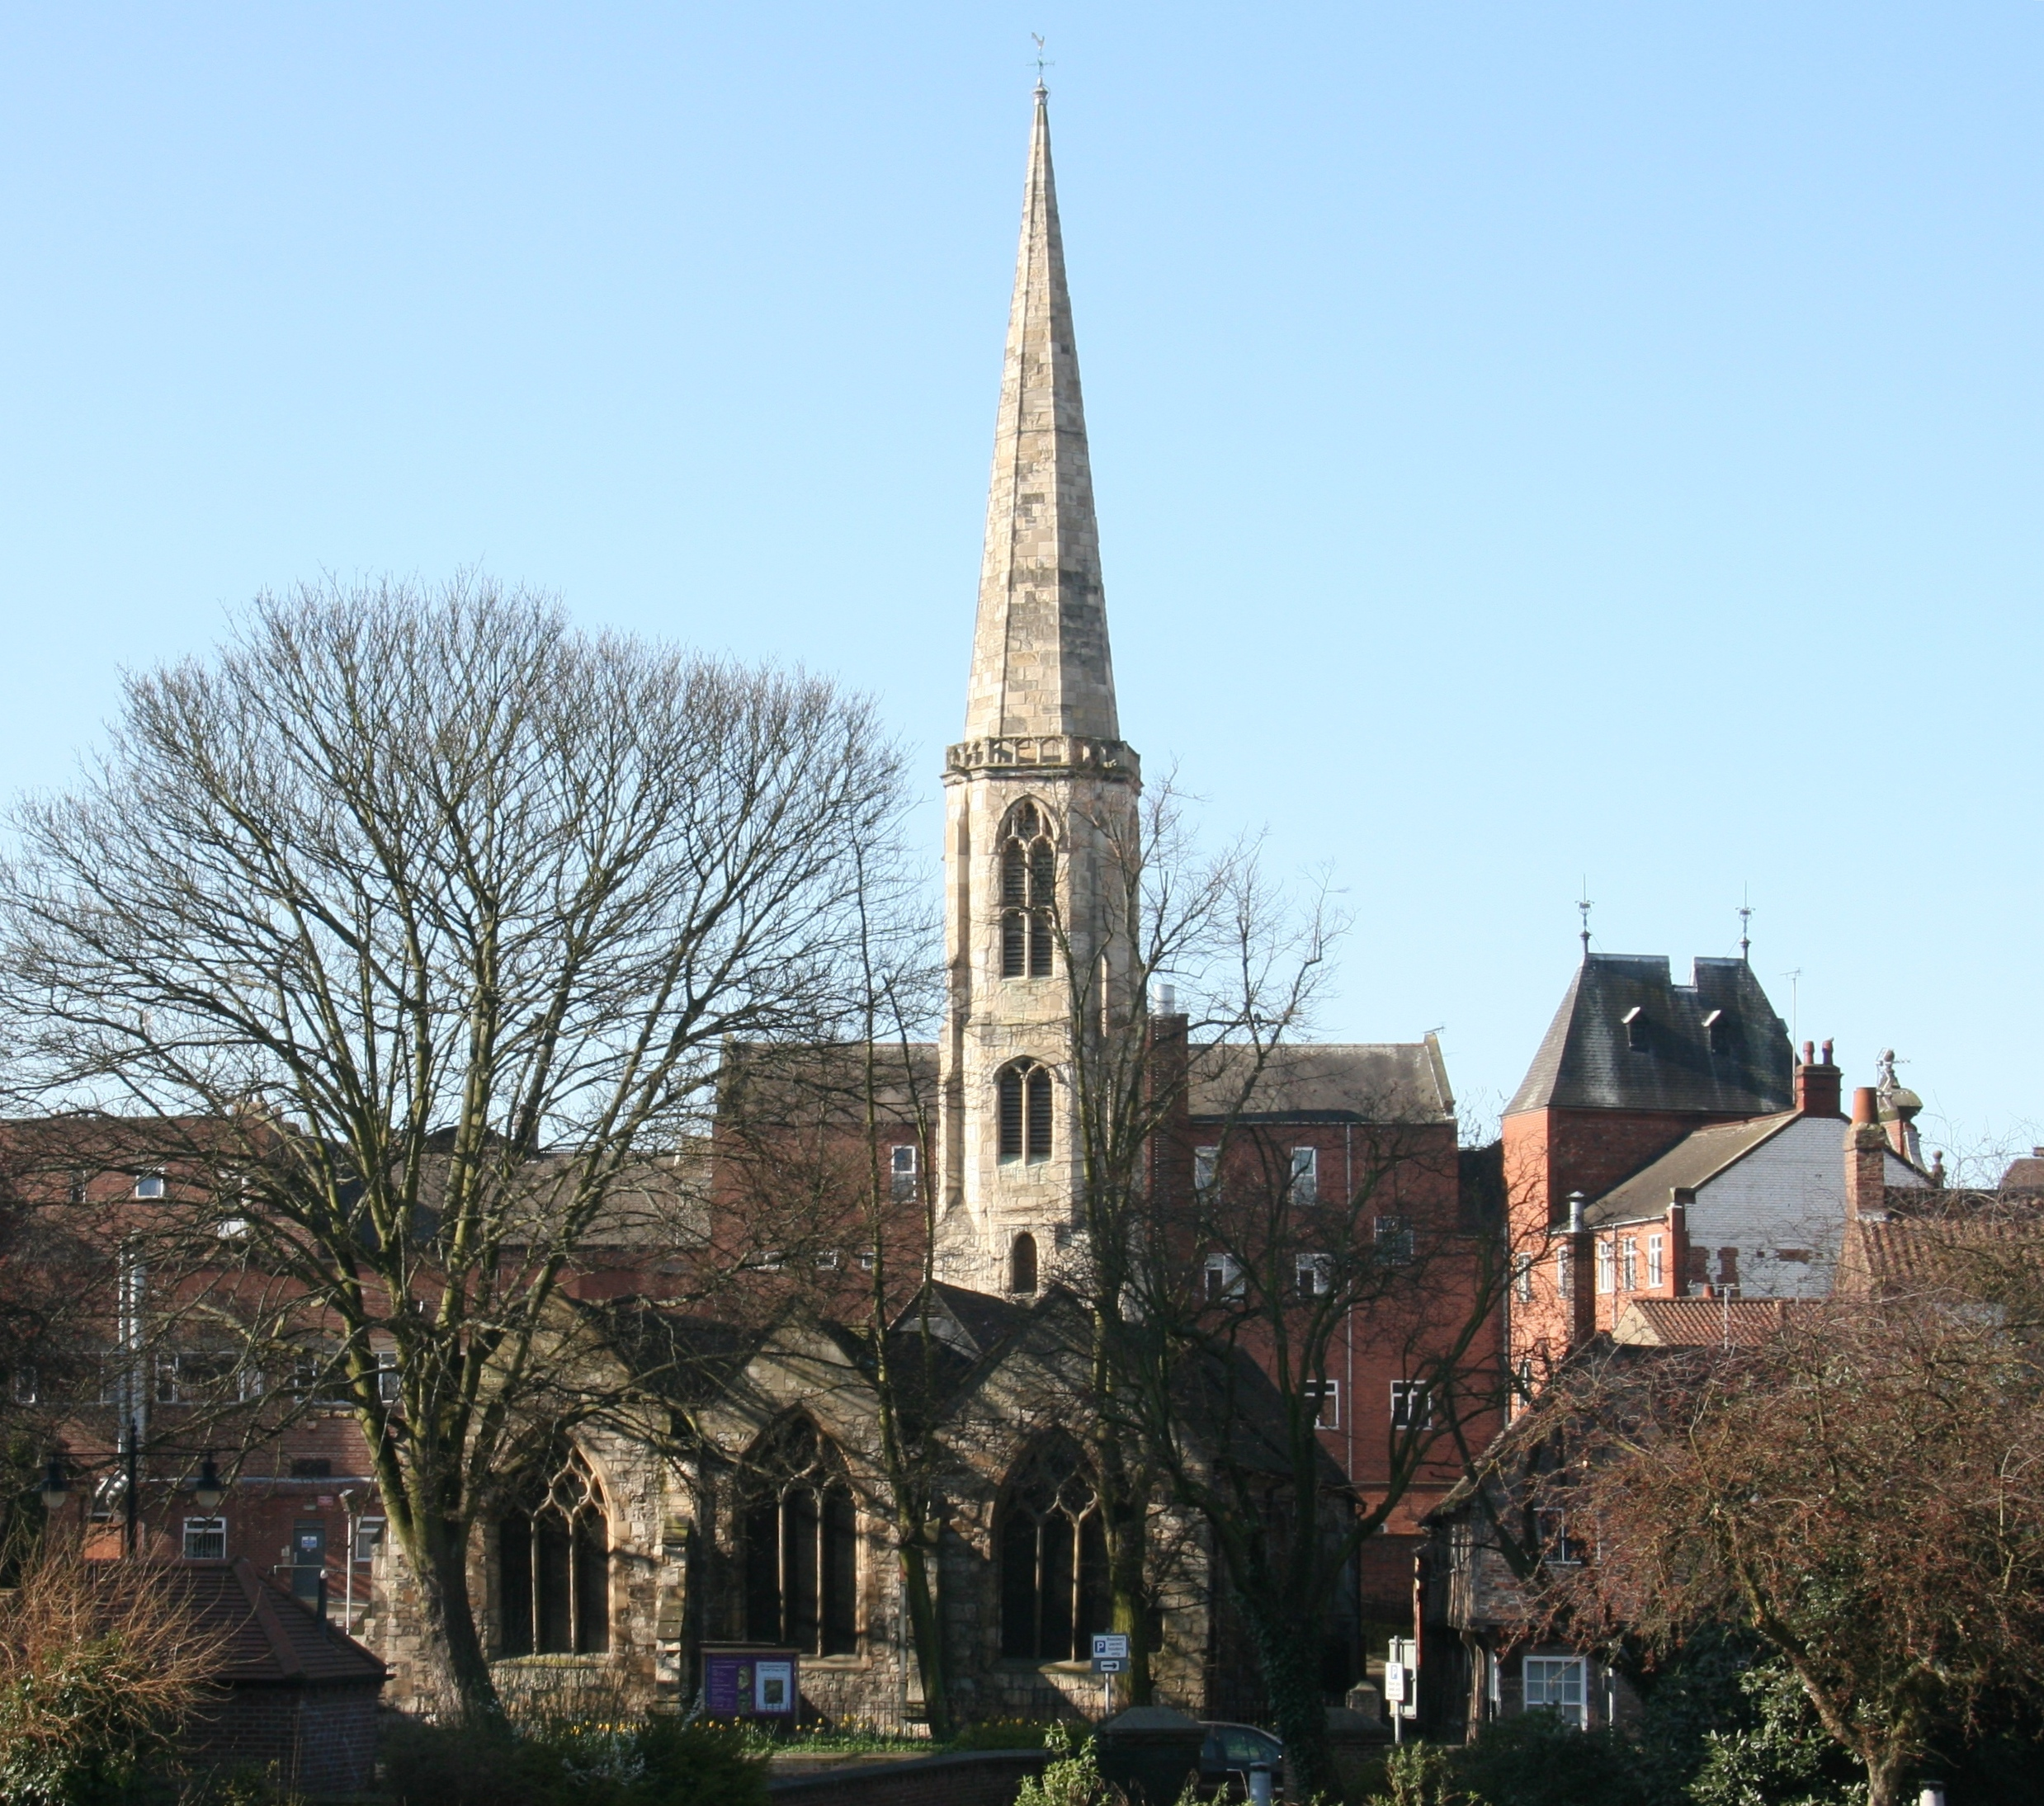 Image: All Saints Church, North Street, York, where John Snow was christened. Photo courtesy of All Saints Church